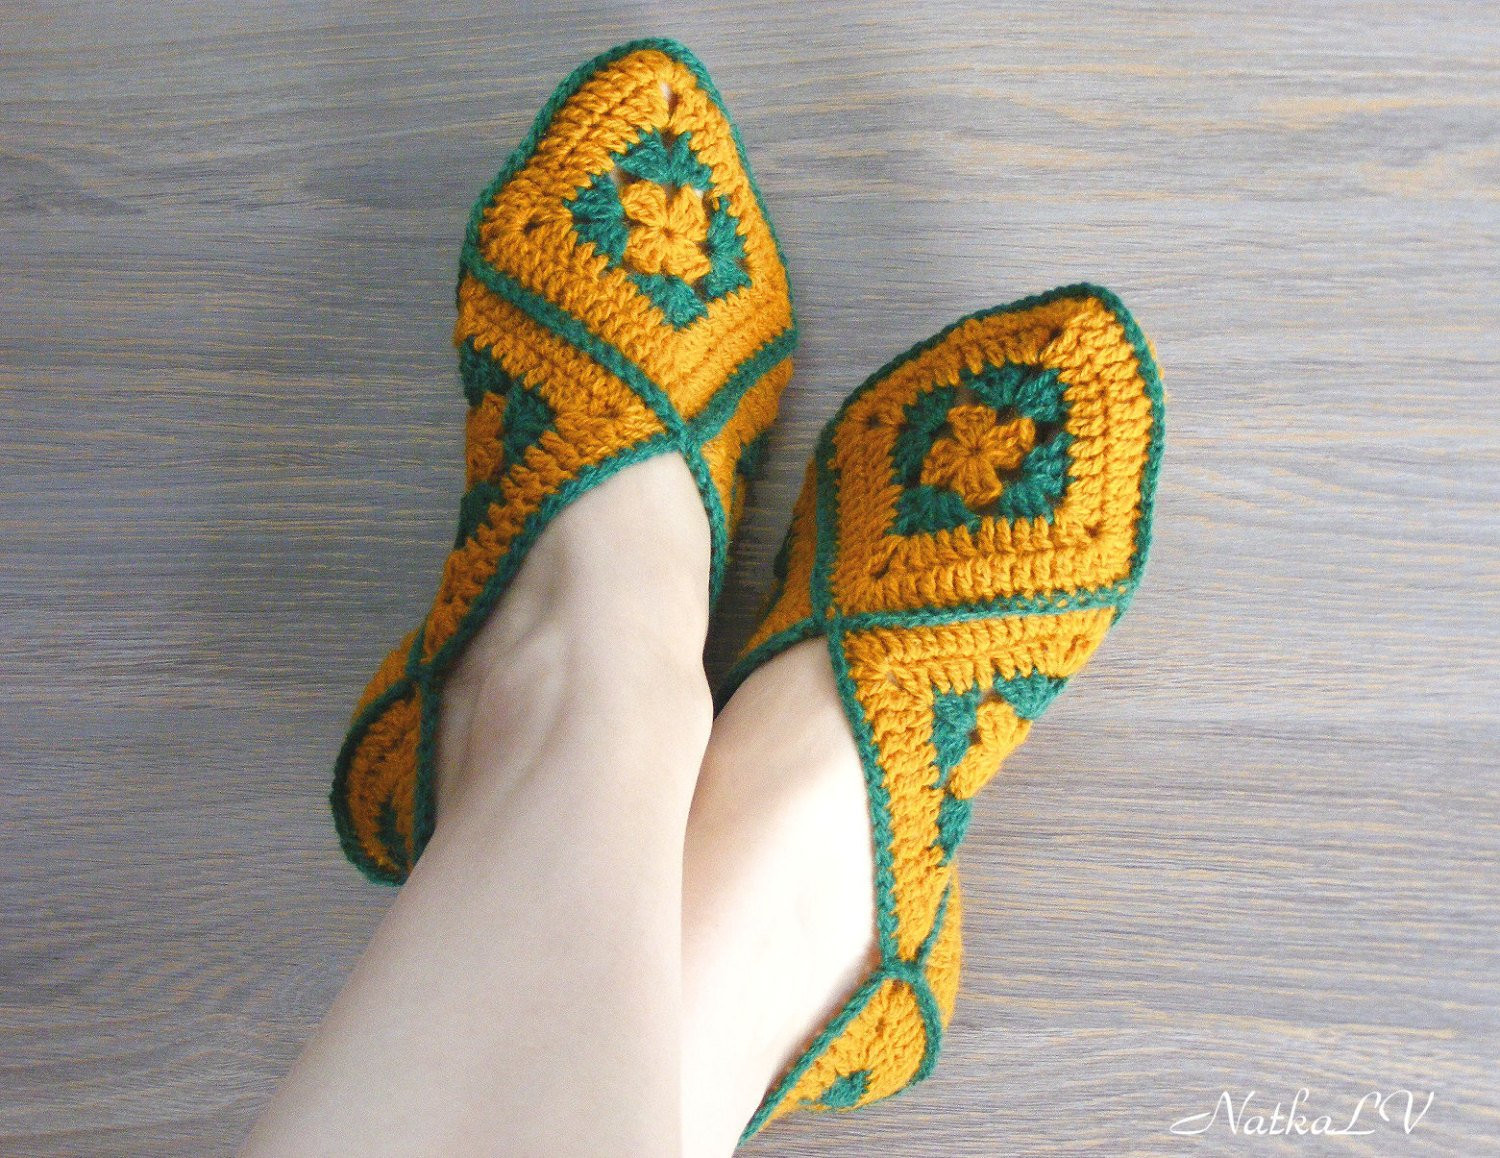 Granny Square Slippers Awesome Crochet Woman S Slippers Home Shoes Granny Square Of Fresh 41 Ideas Granny Square Slippers